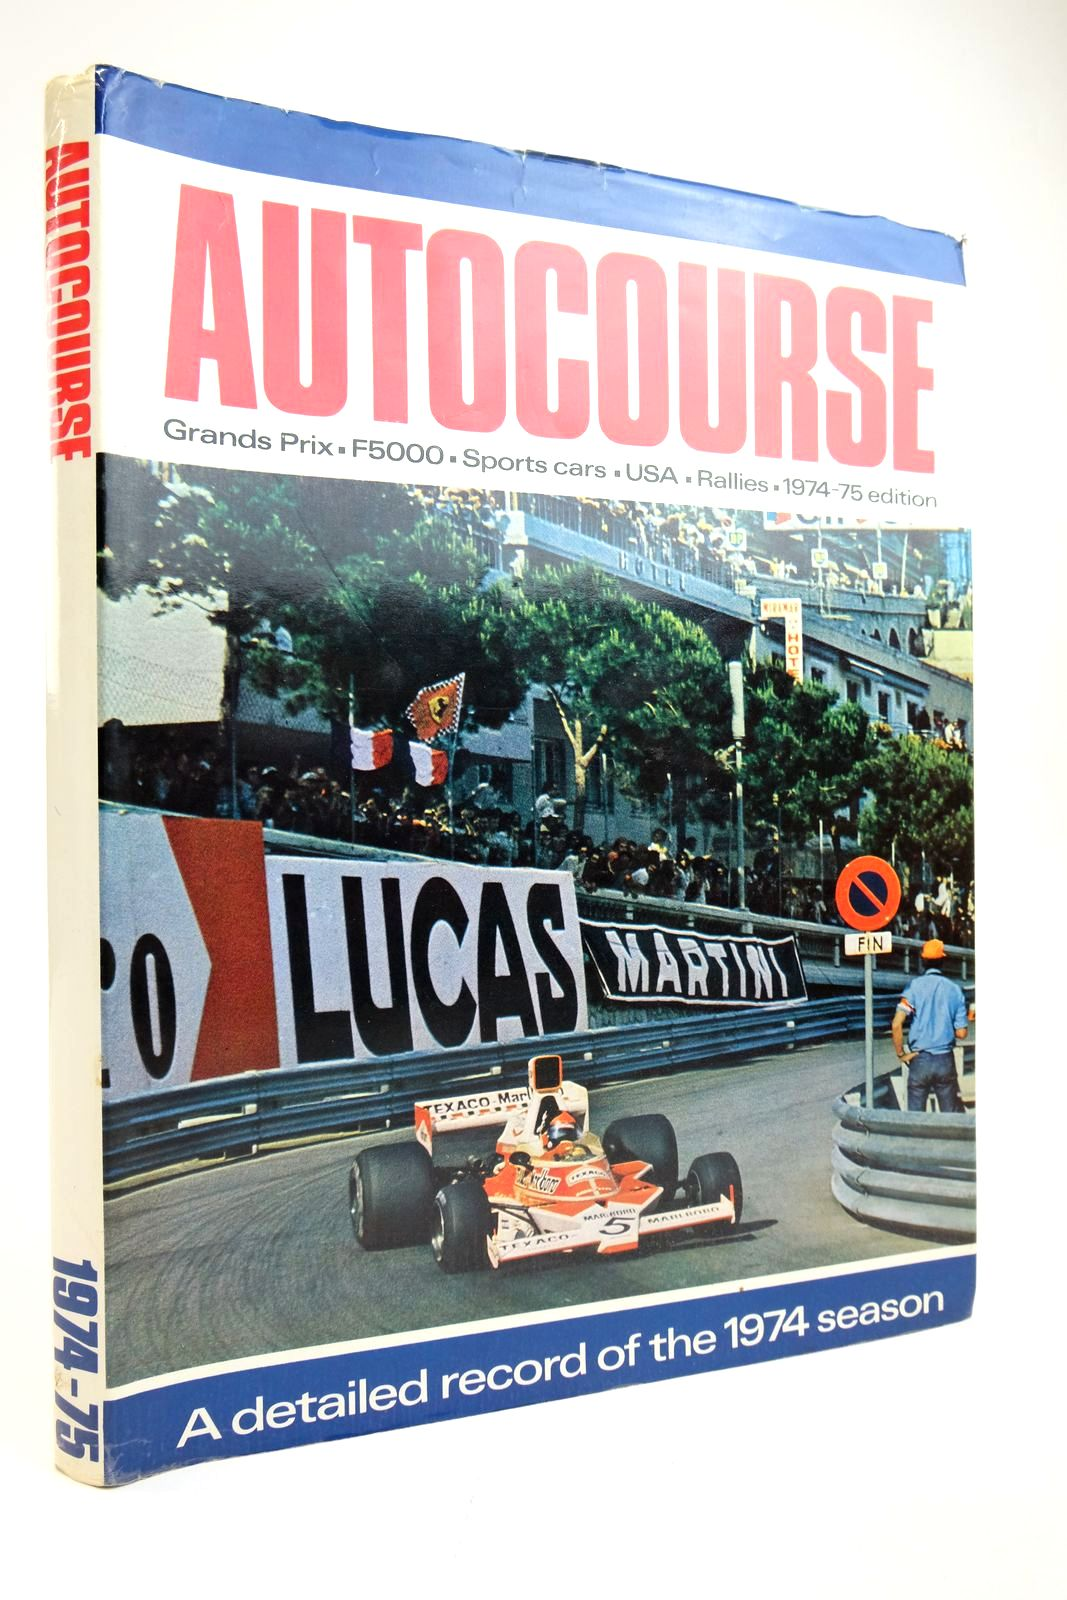 Photo of AUTOCOURSE 1974-75 written by Kettlewell, Mike published by Haymarket Publishing Limited (STOCK CODE: 2135303)  for sale by Stella & Rose's Books